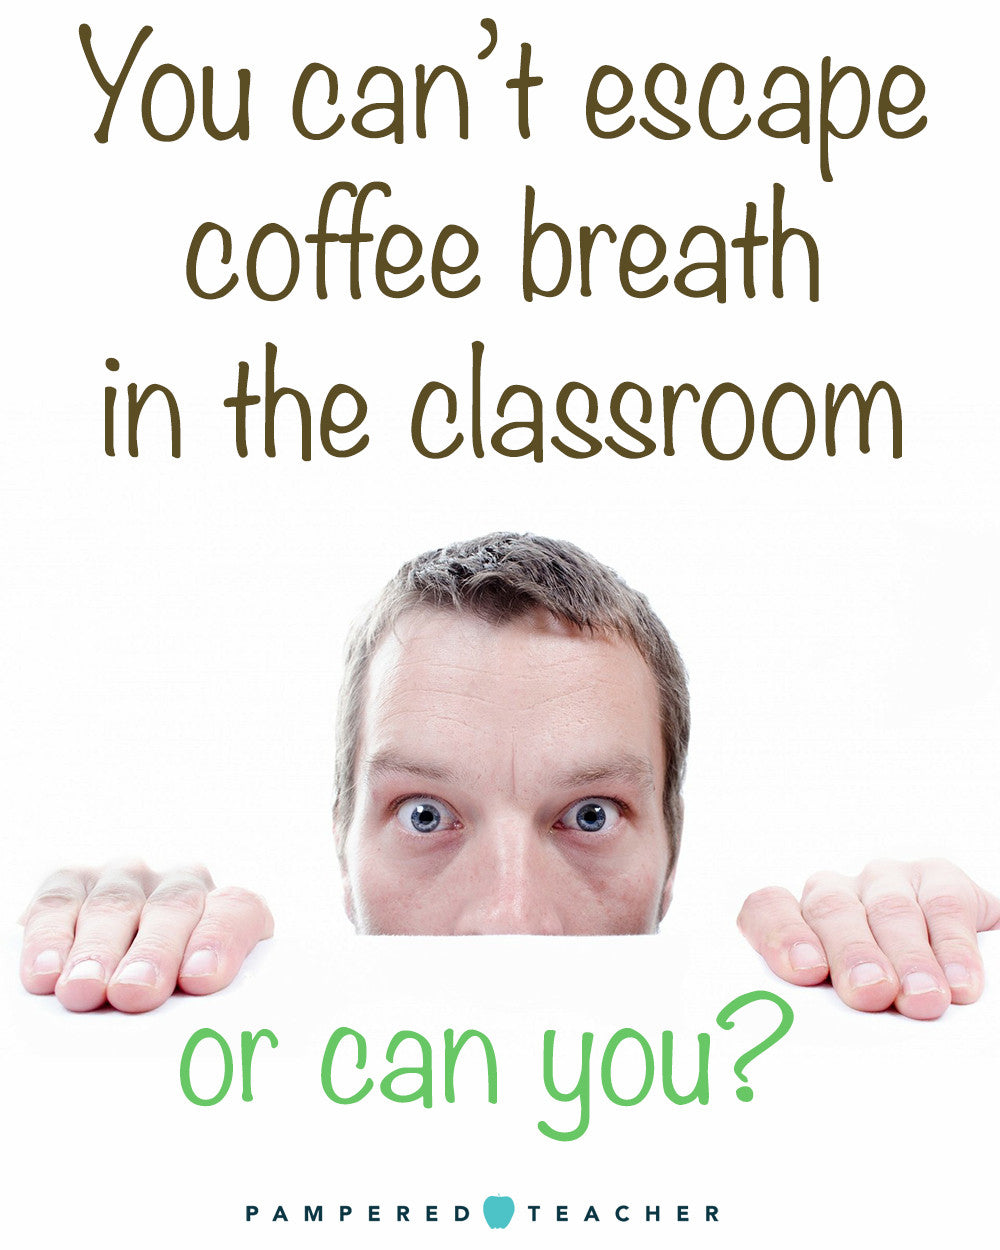 Remedies for bad coffee breath for teachers. Great gift idea for end of year male teacher gift especially | learn more at Pampered Teacher | product being featured in upcoming subscription boxes